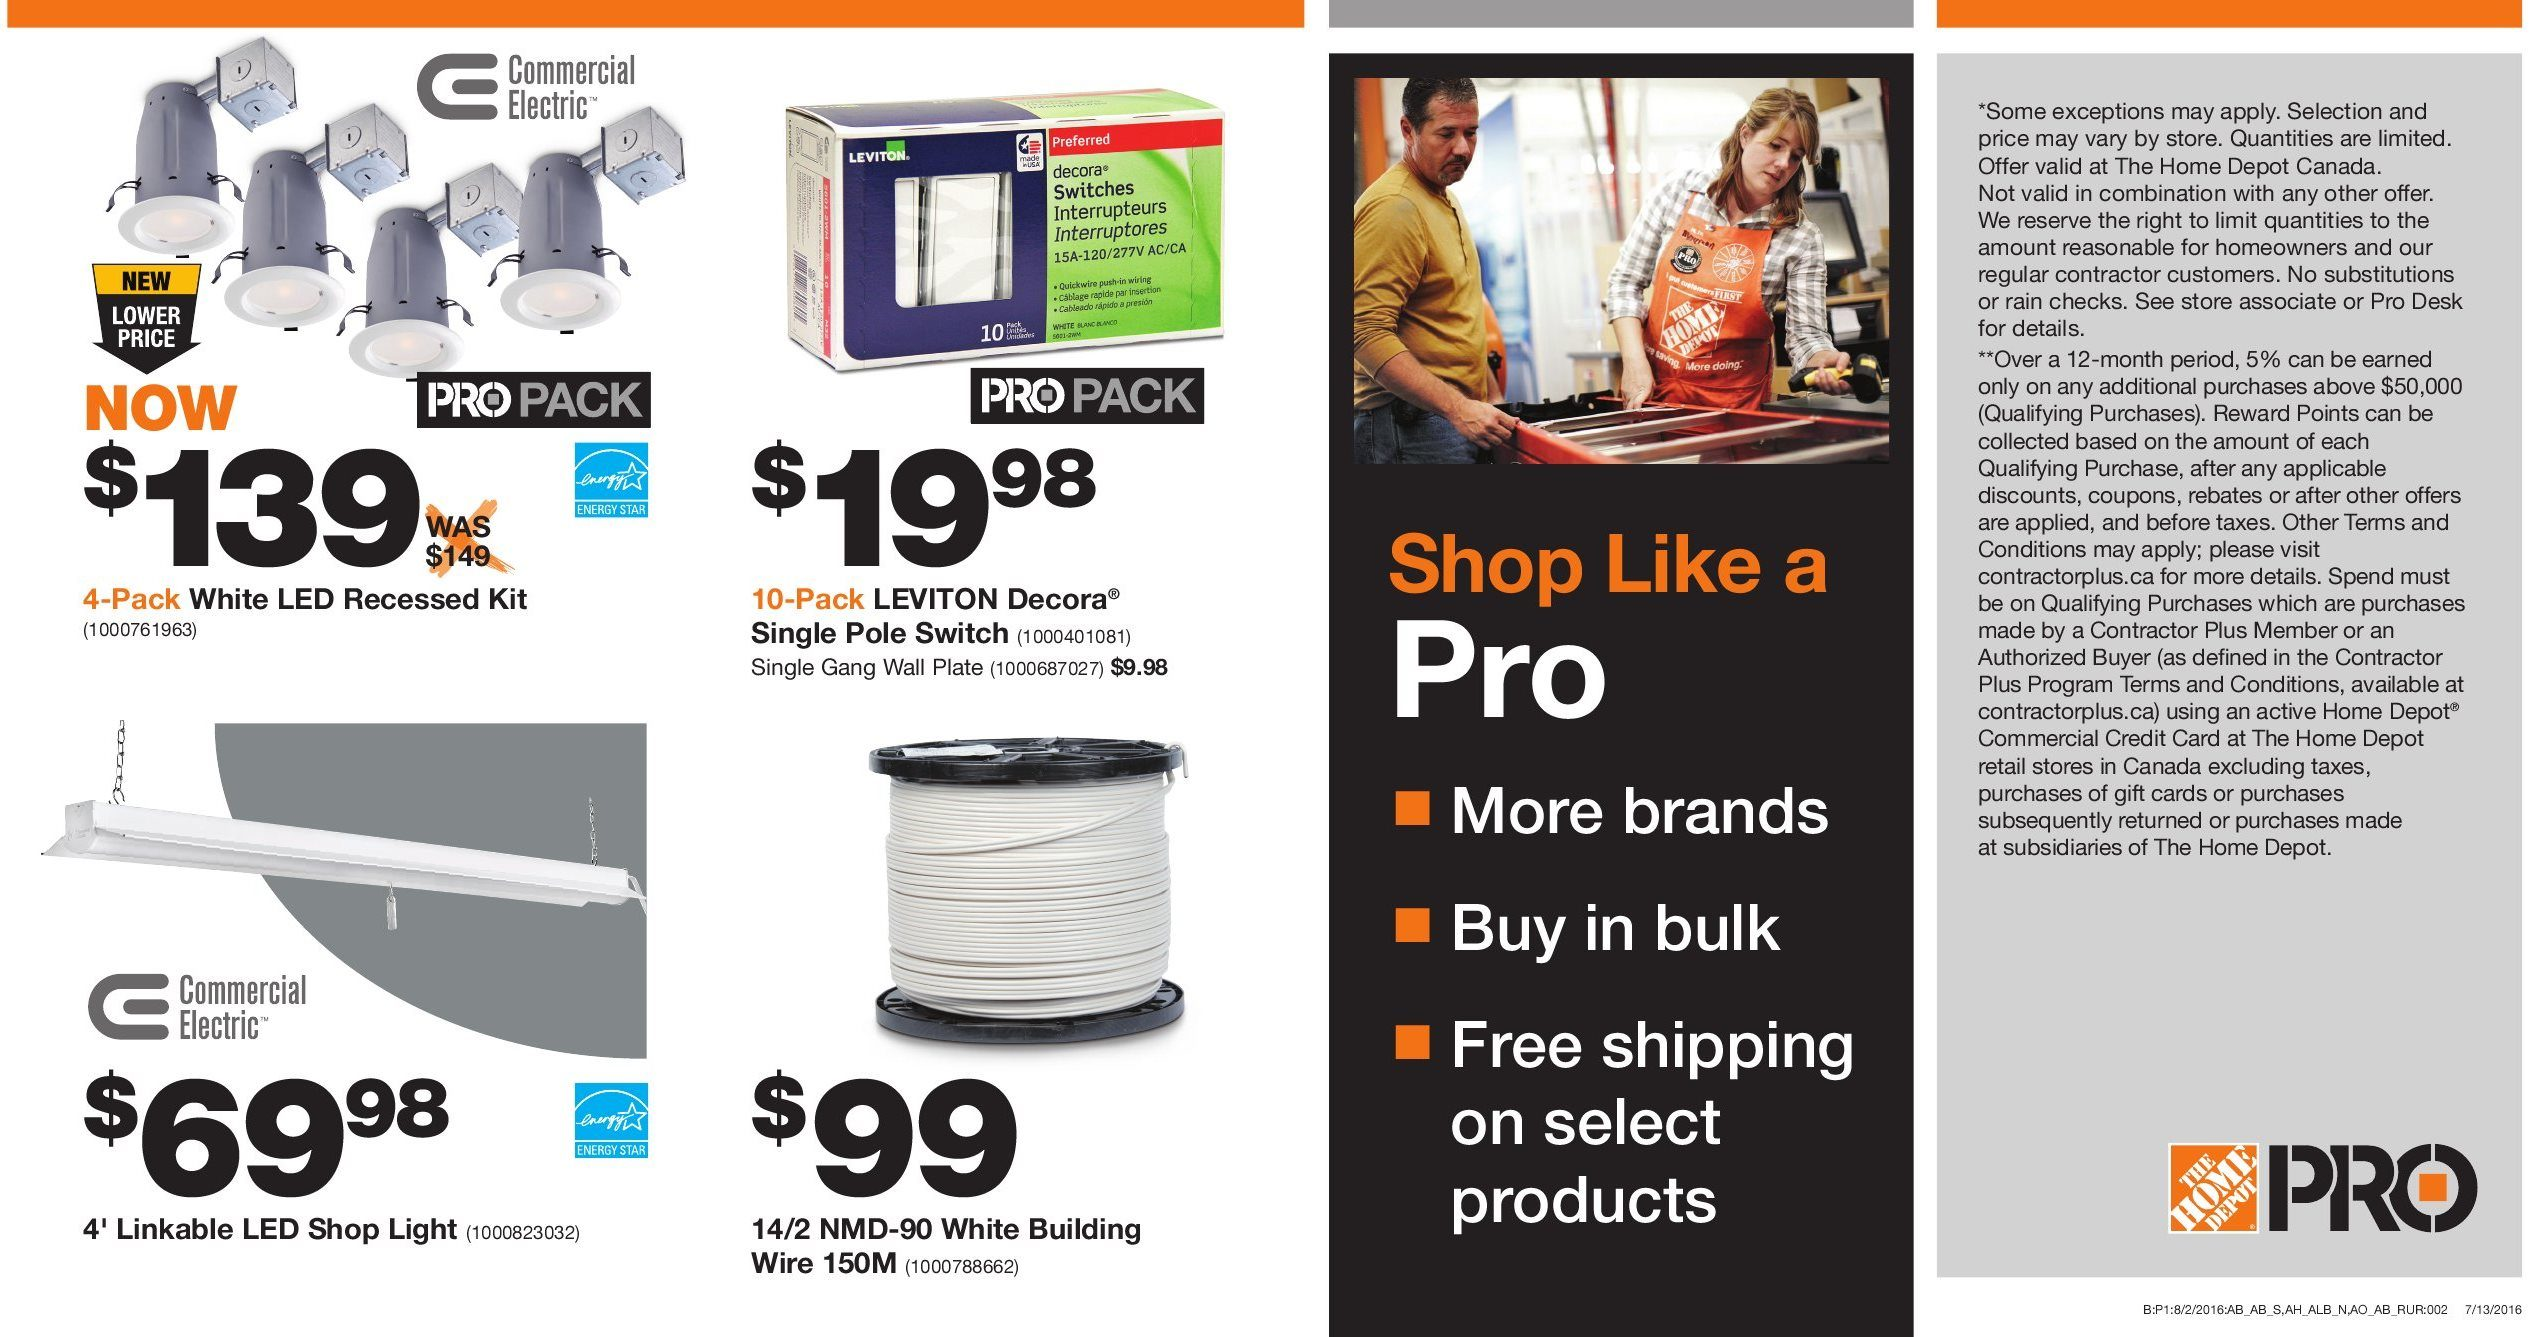 Home Depot Weekly Flyer - Pro Savings - Aug 16 – 29 - RedFlagDeals com